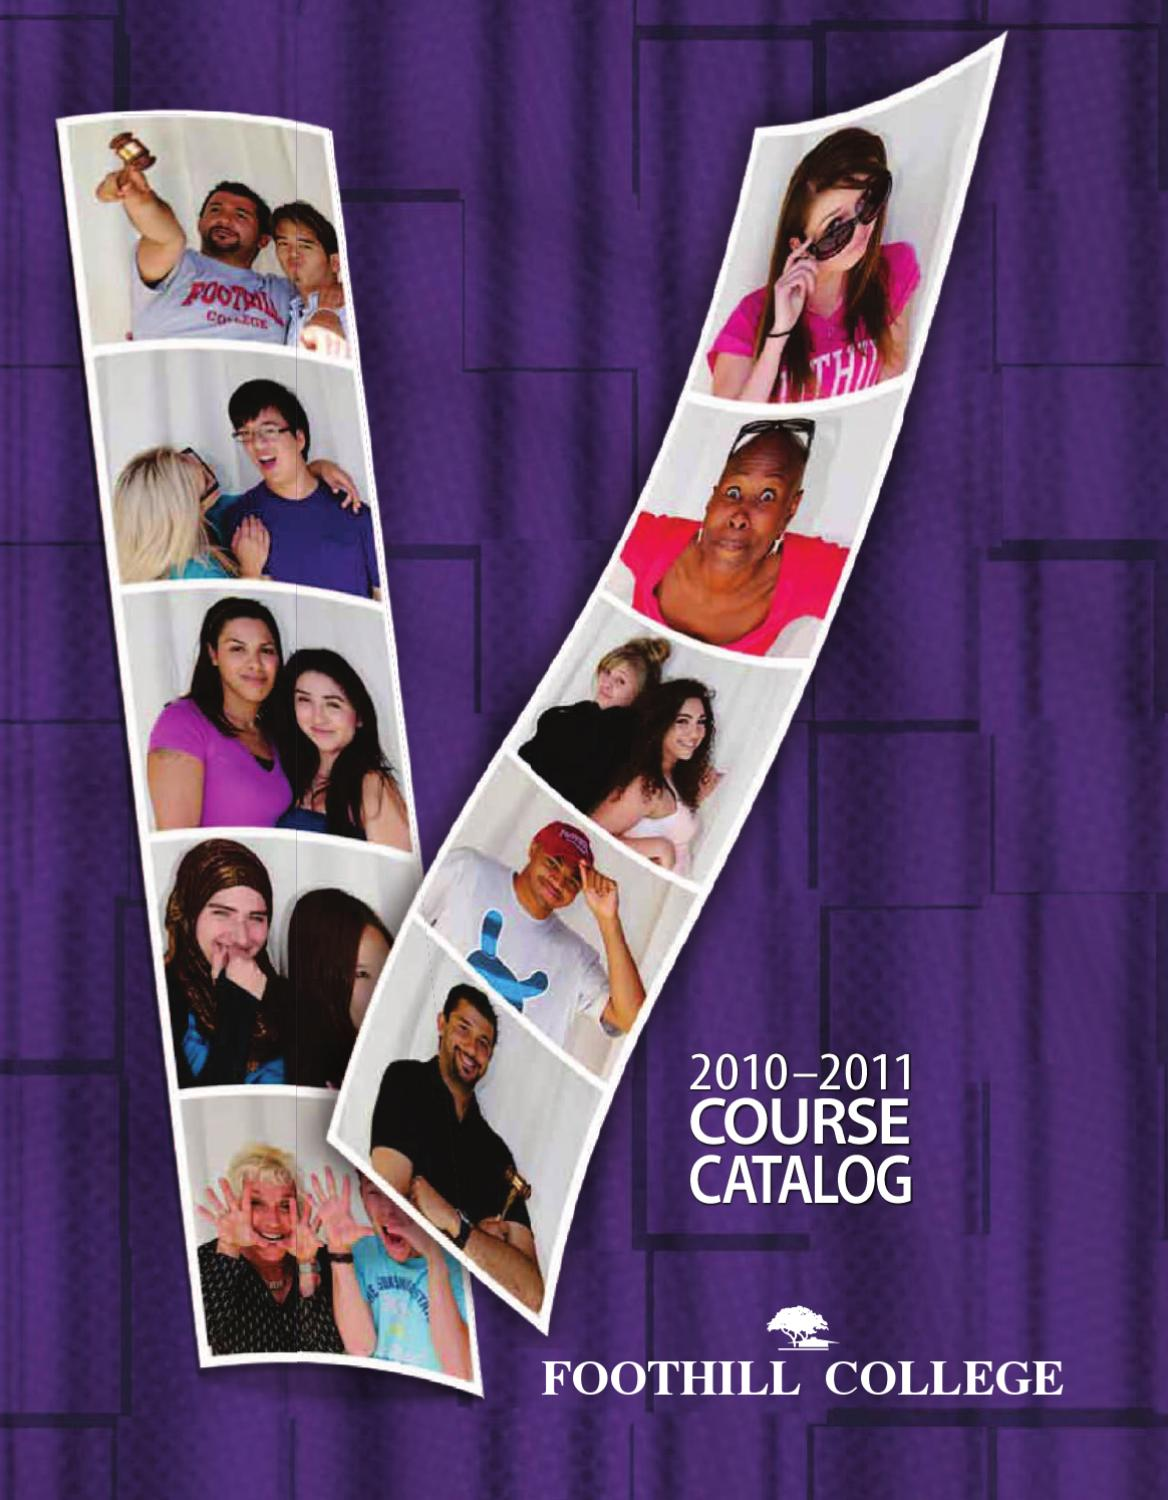 Foothill College 2010 2011 Course Catalog By Foothill